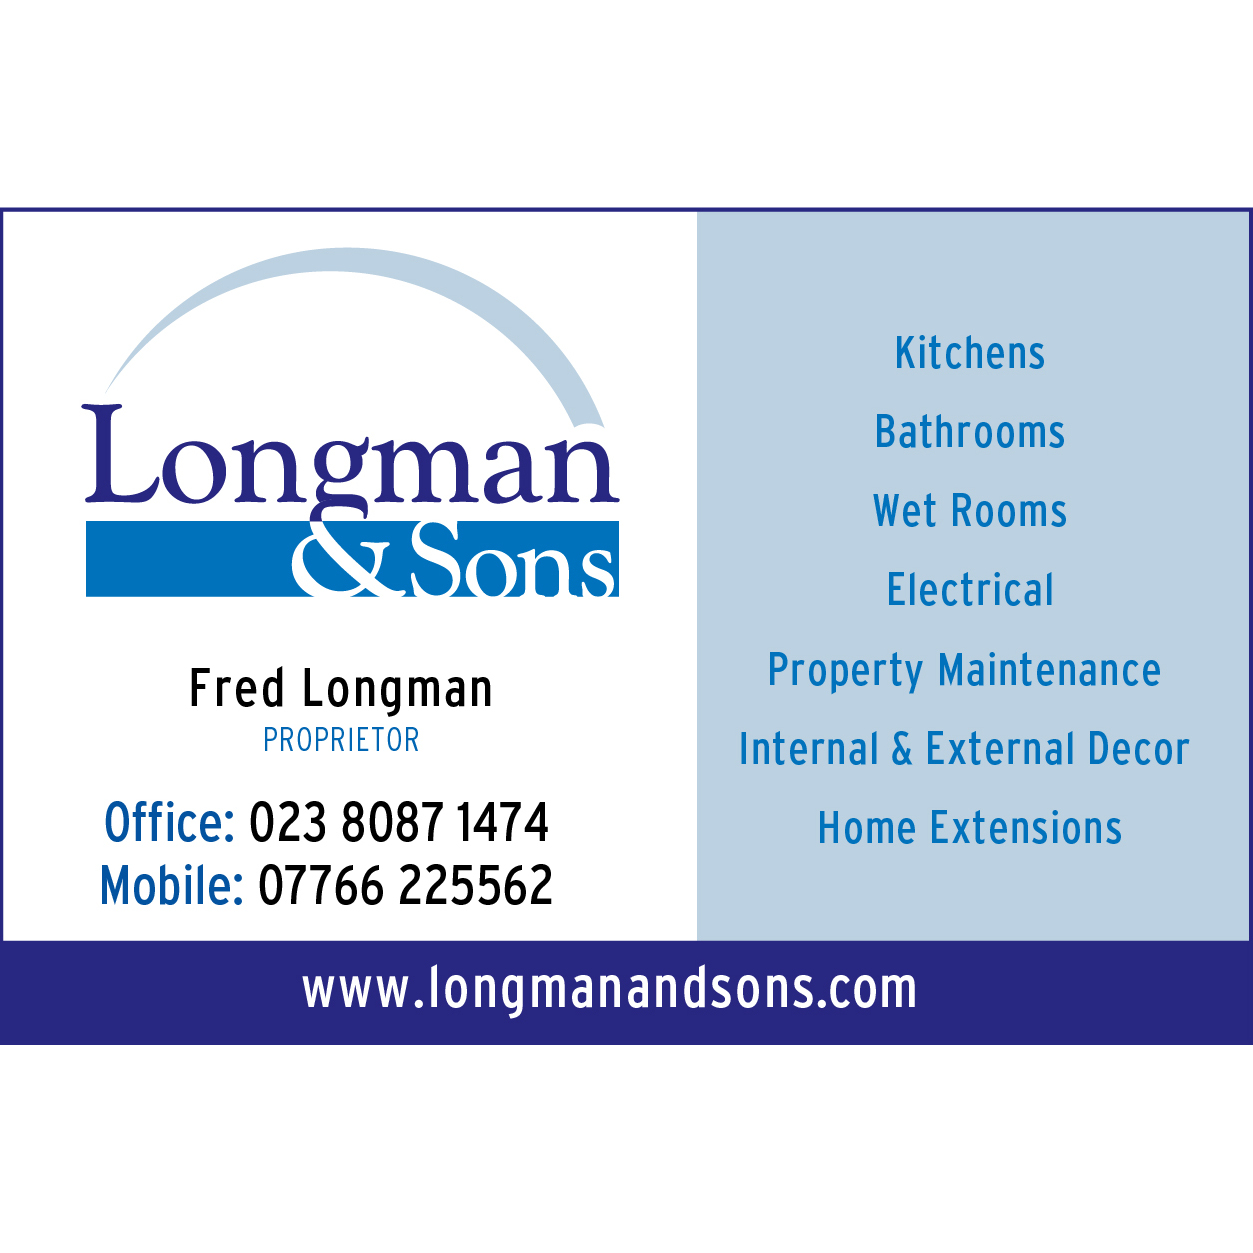 Longman and Sons